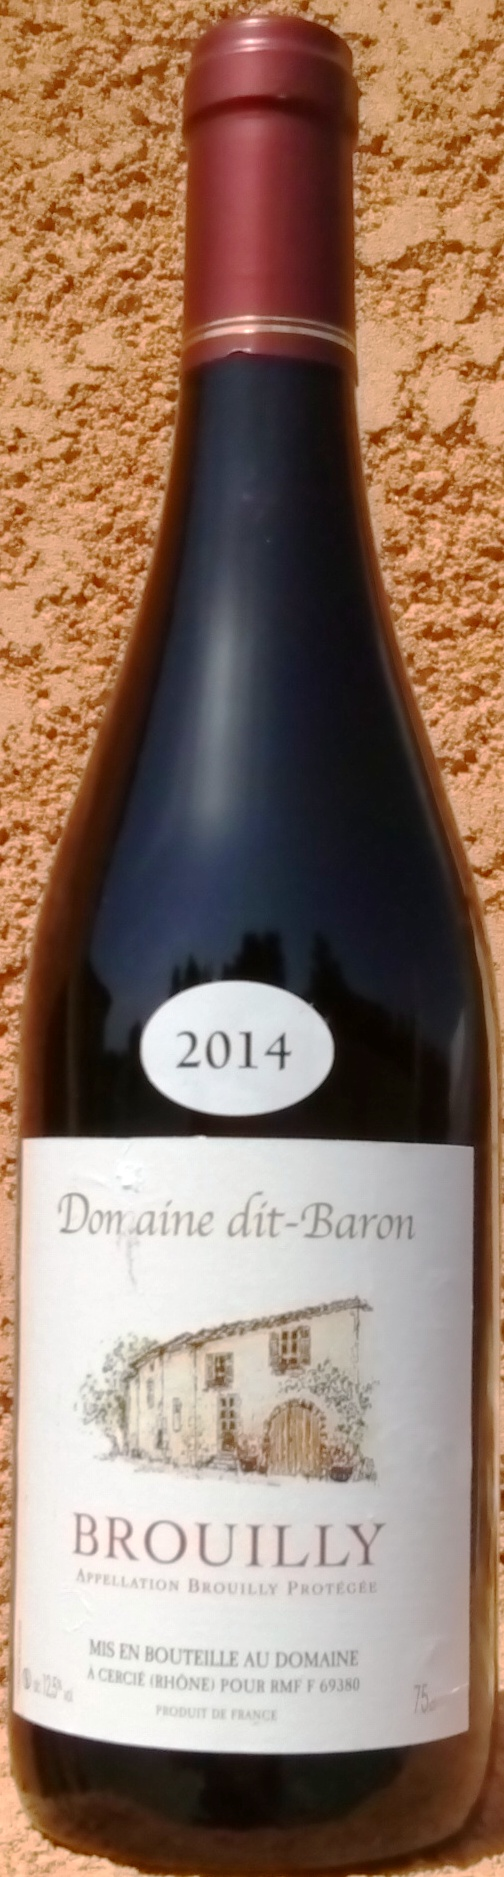 BROUILLY 2017 Domaine dit Baron